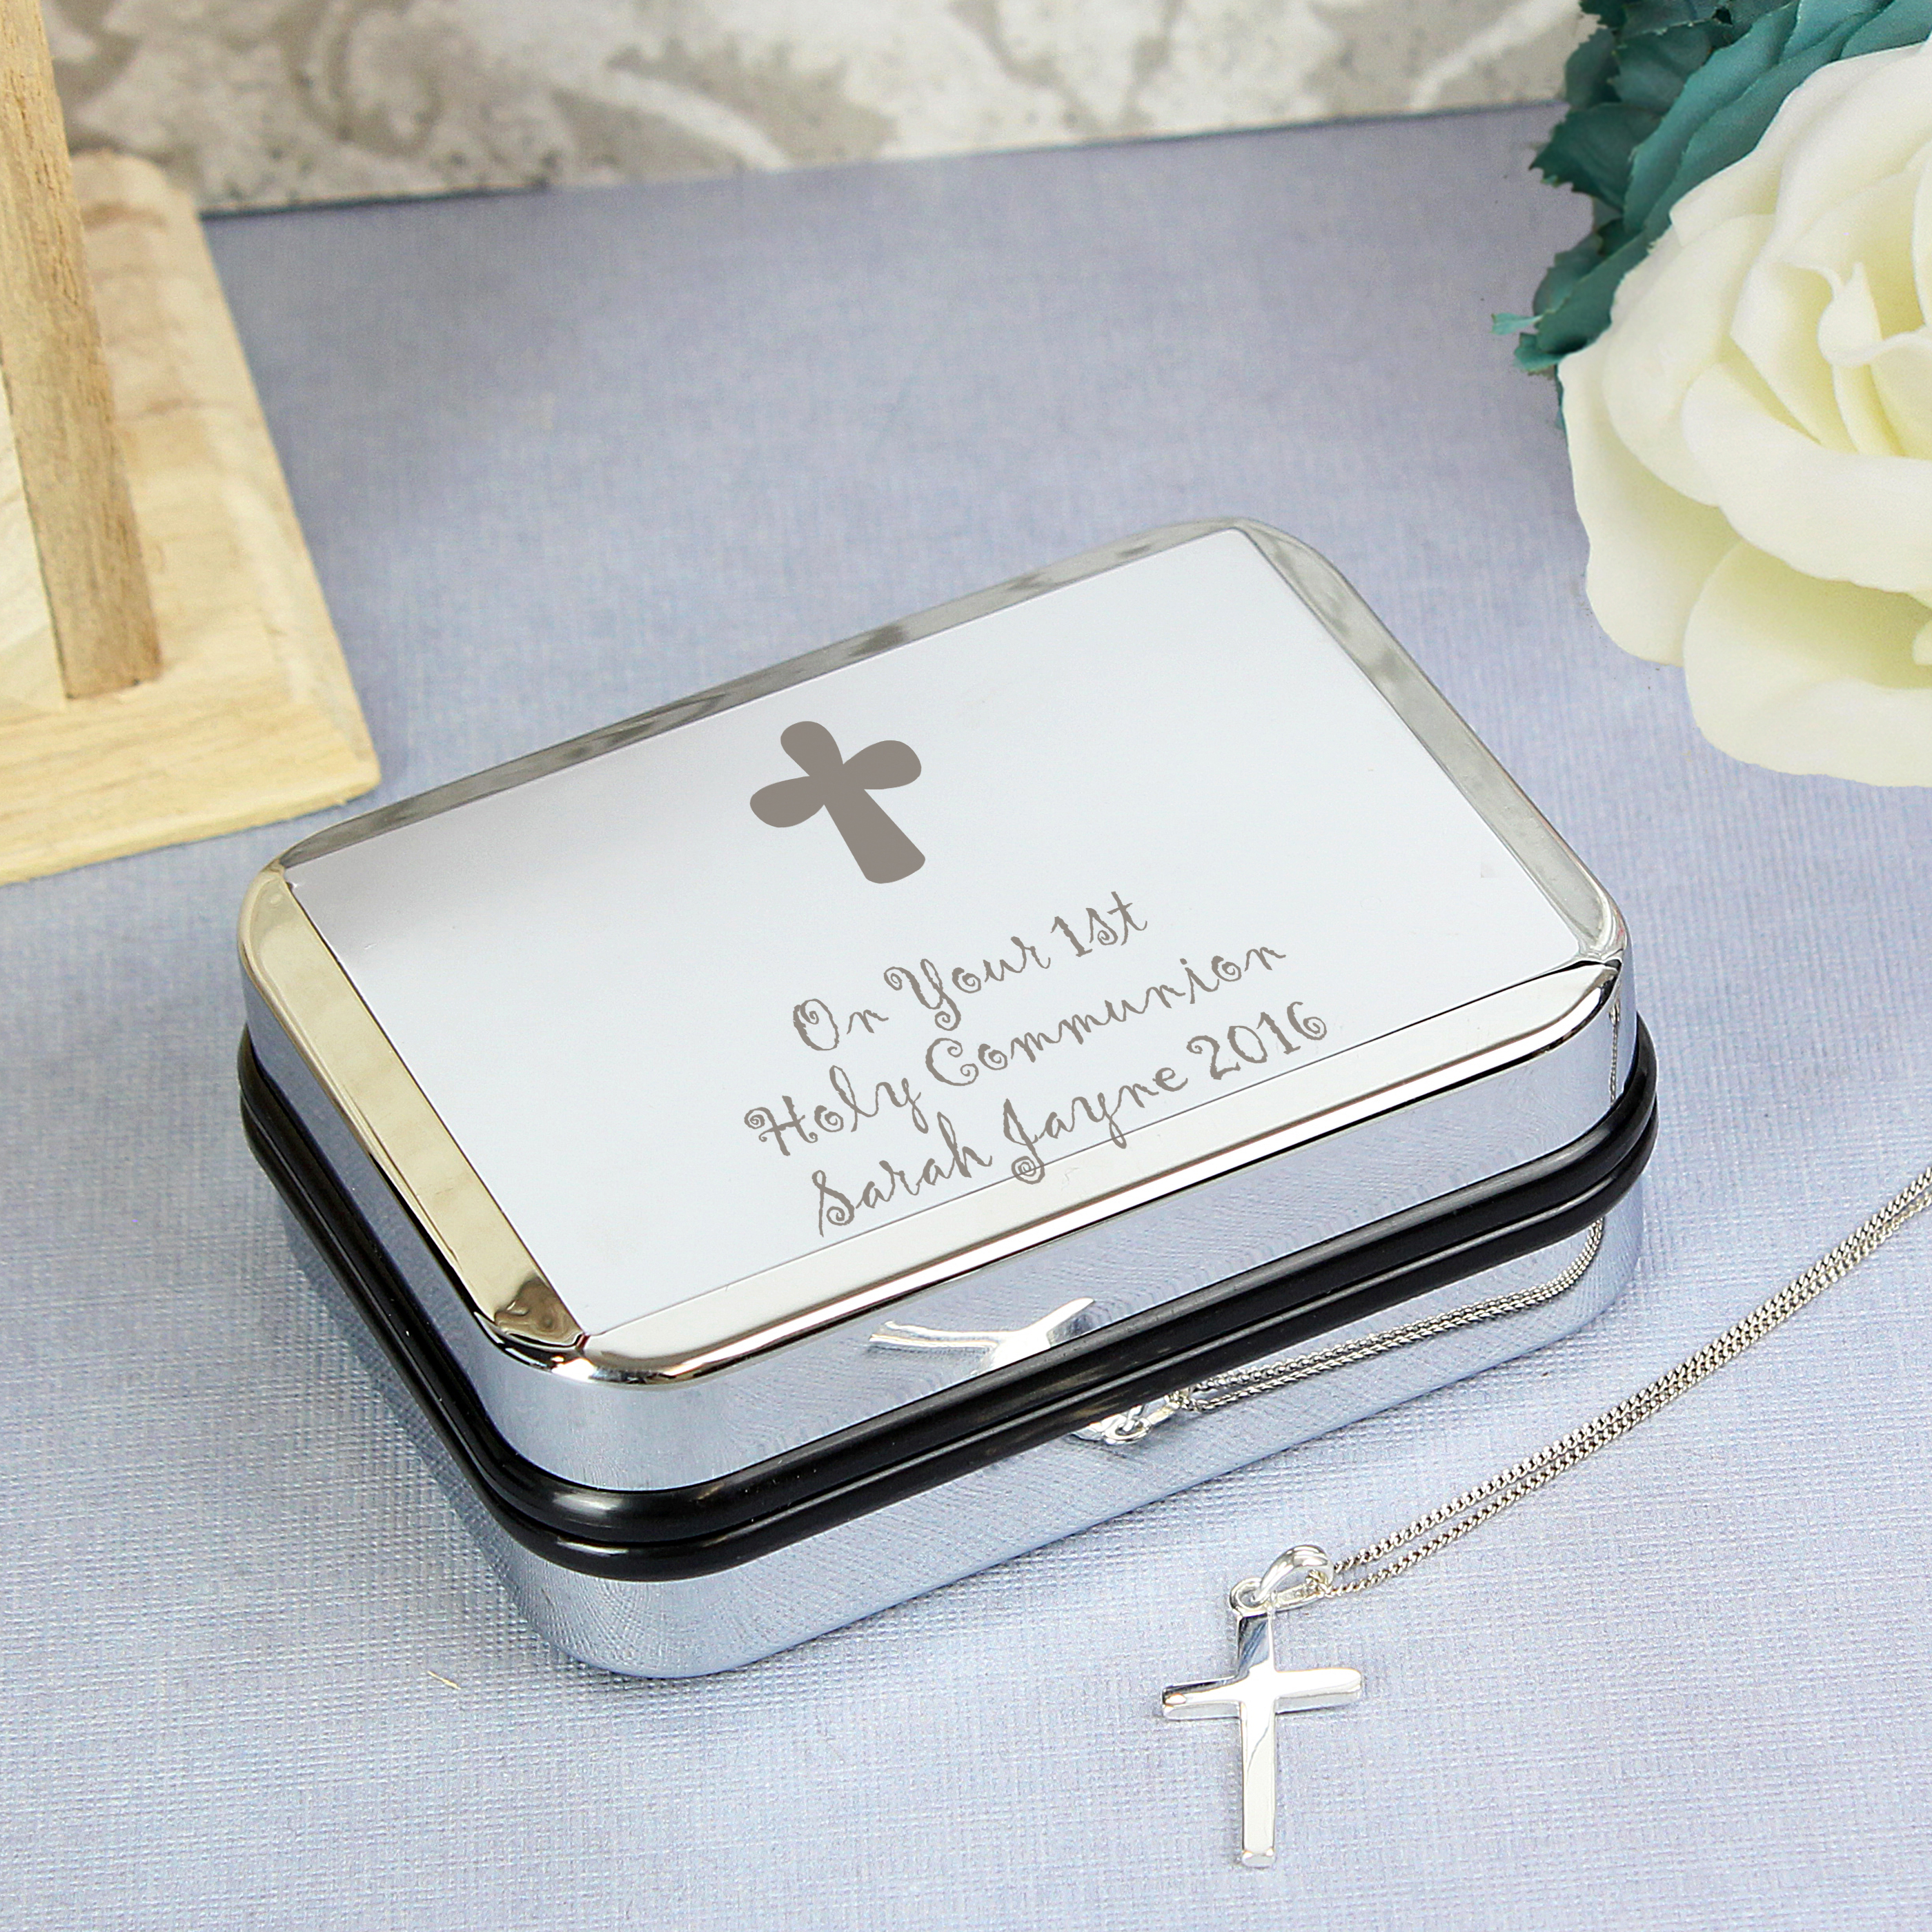 Engraved Cross Necklace and Box